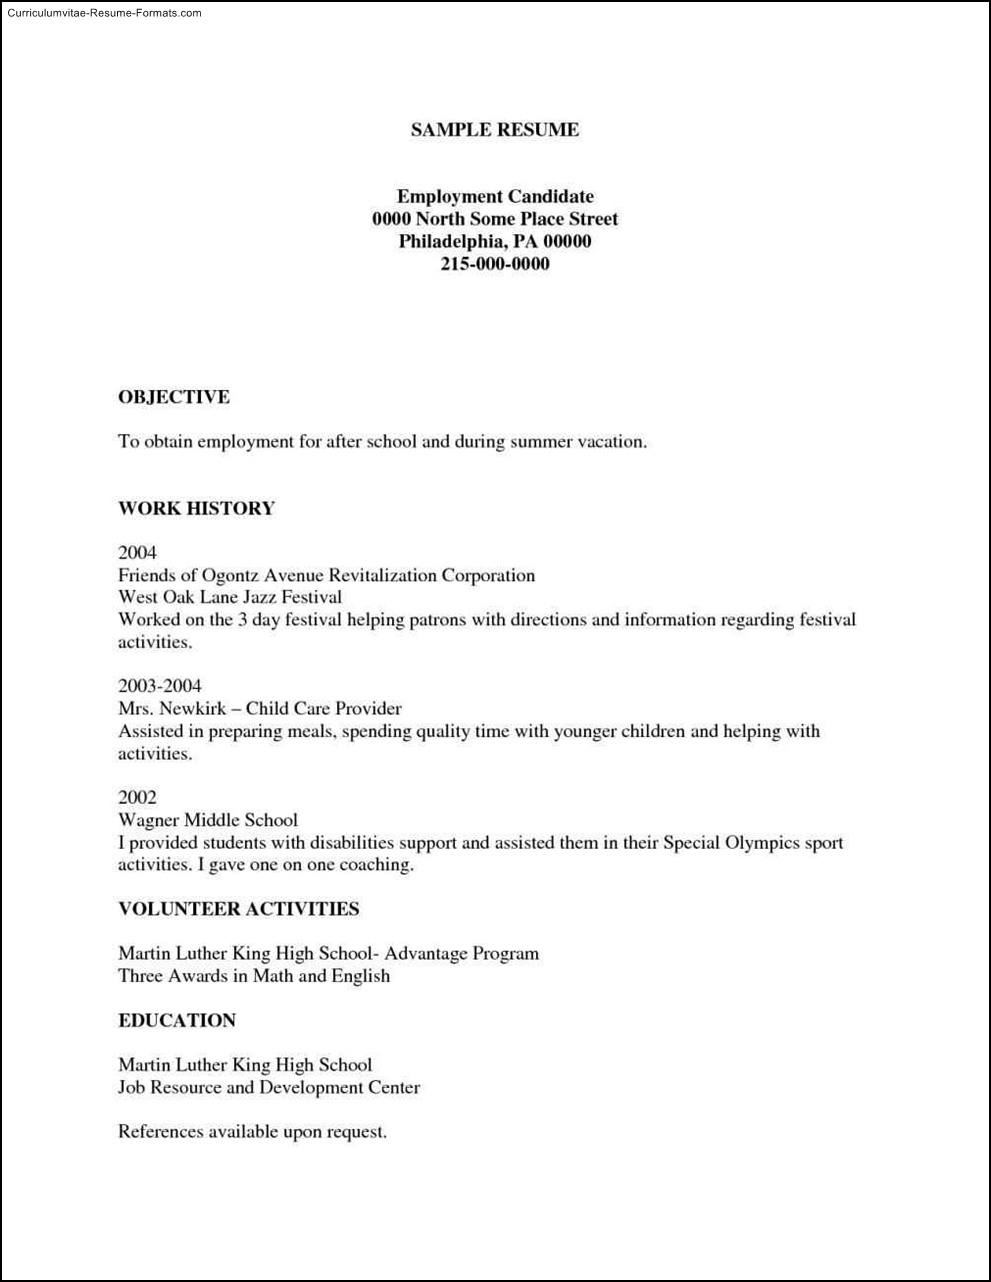 free printable resume templates ipasphoto examples inspirational resumes samples should Resume Printable Resume Examples